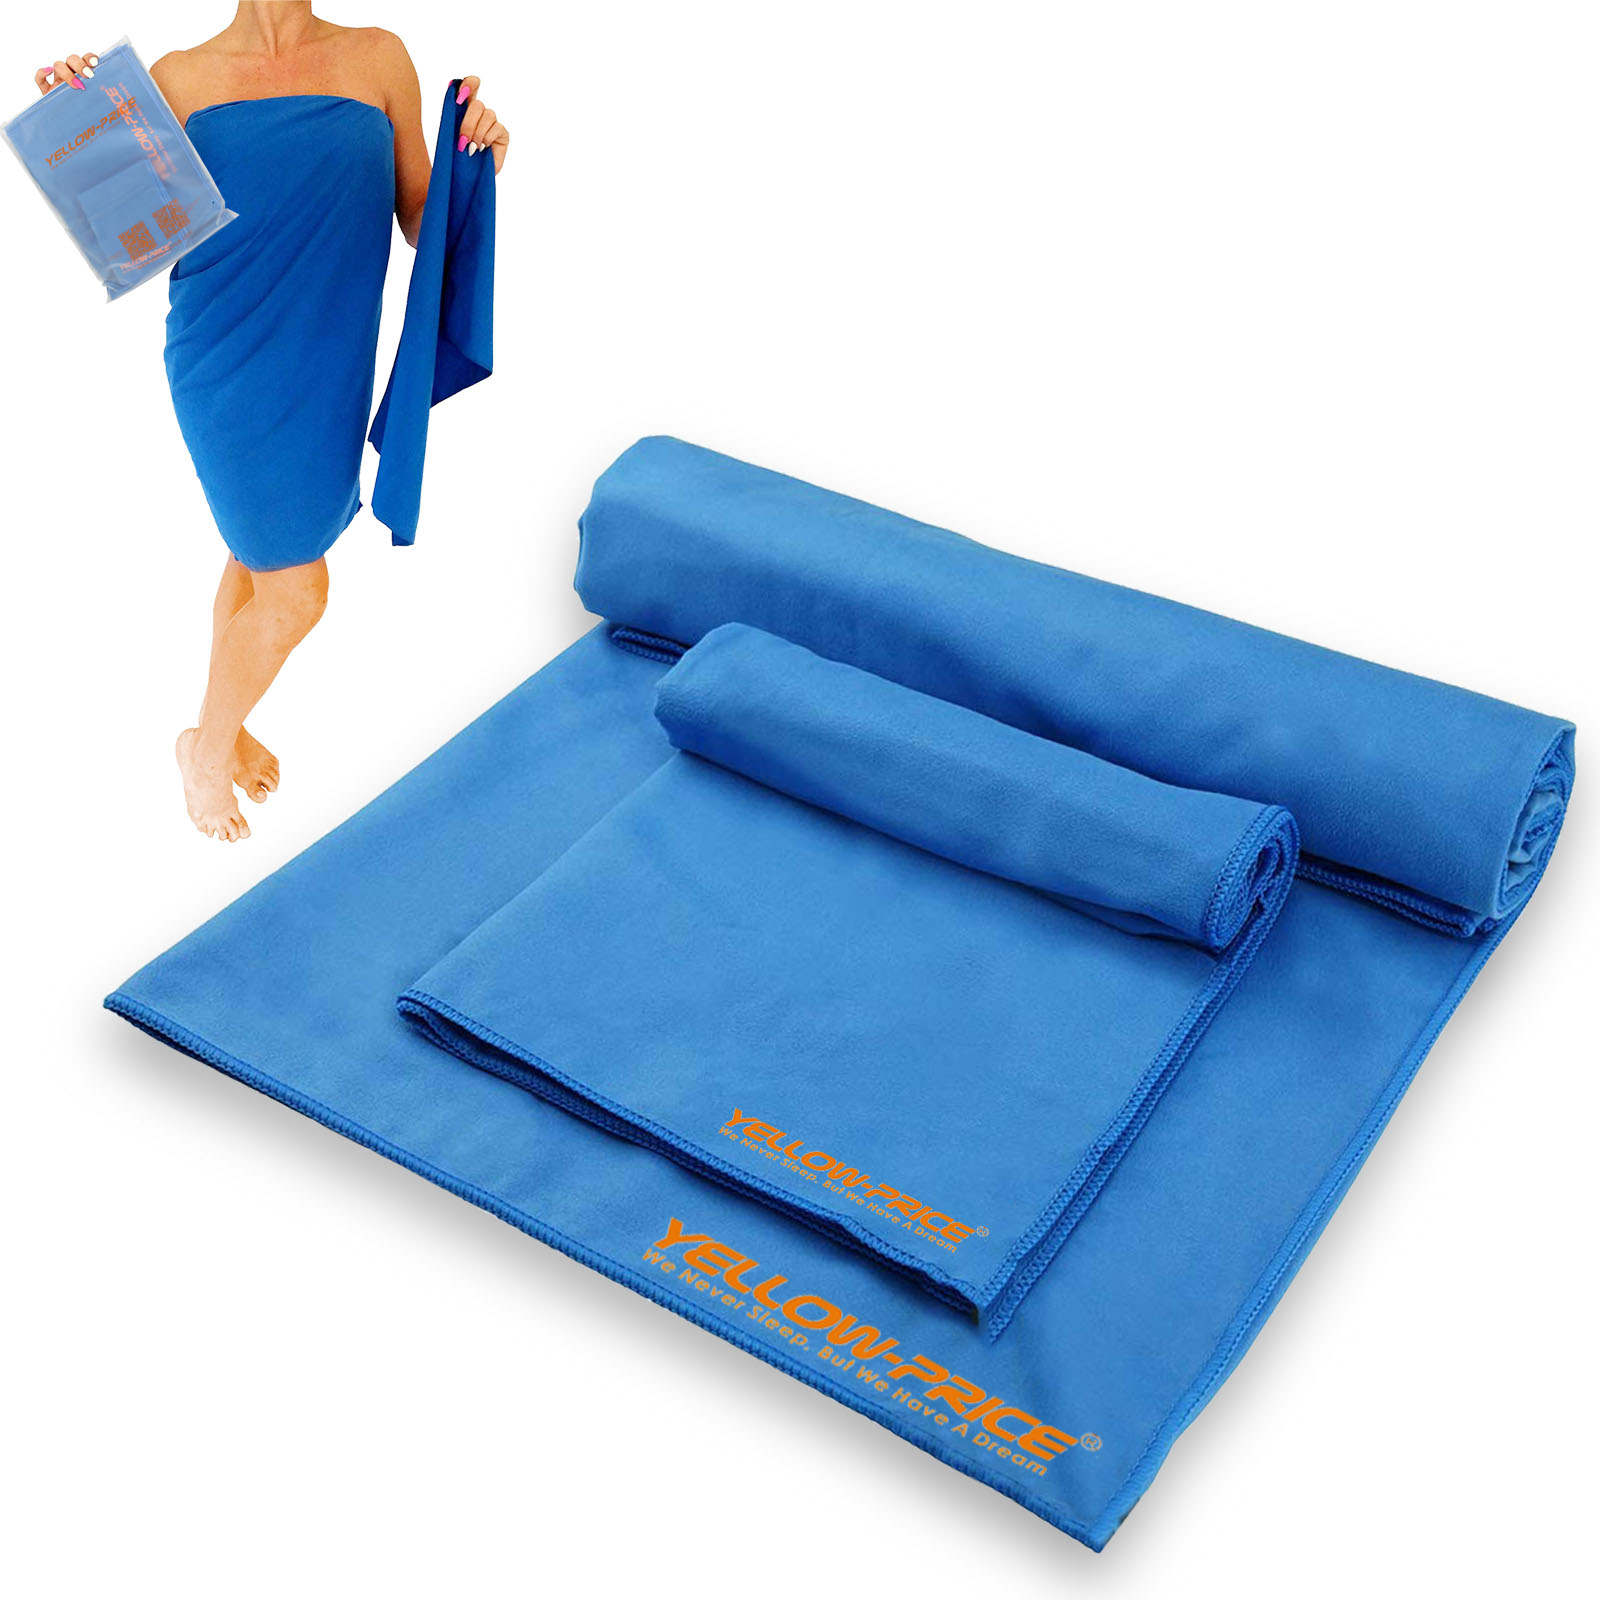 Microfiber Travel Towels Australia: Travel Sports Microfiber Towel Gym Fast Drying & Free